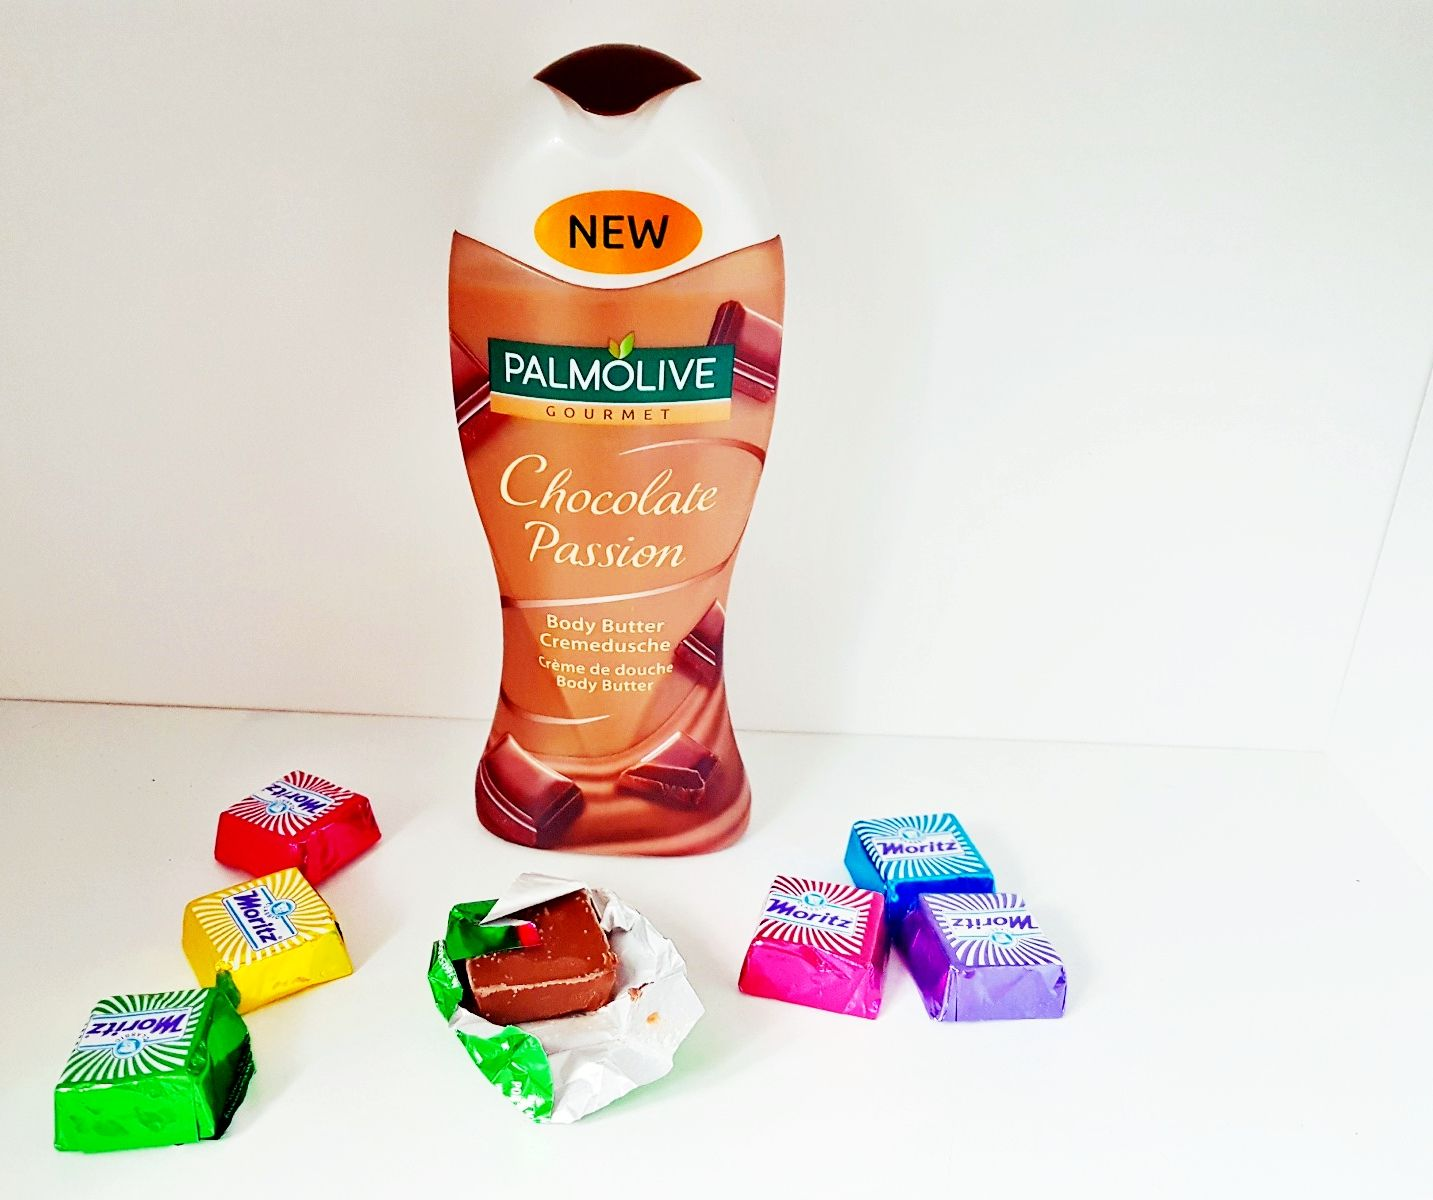 Palmolive Cremedusche Gourmet Chocolate Passion